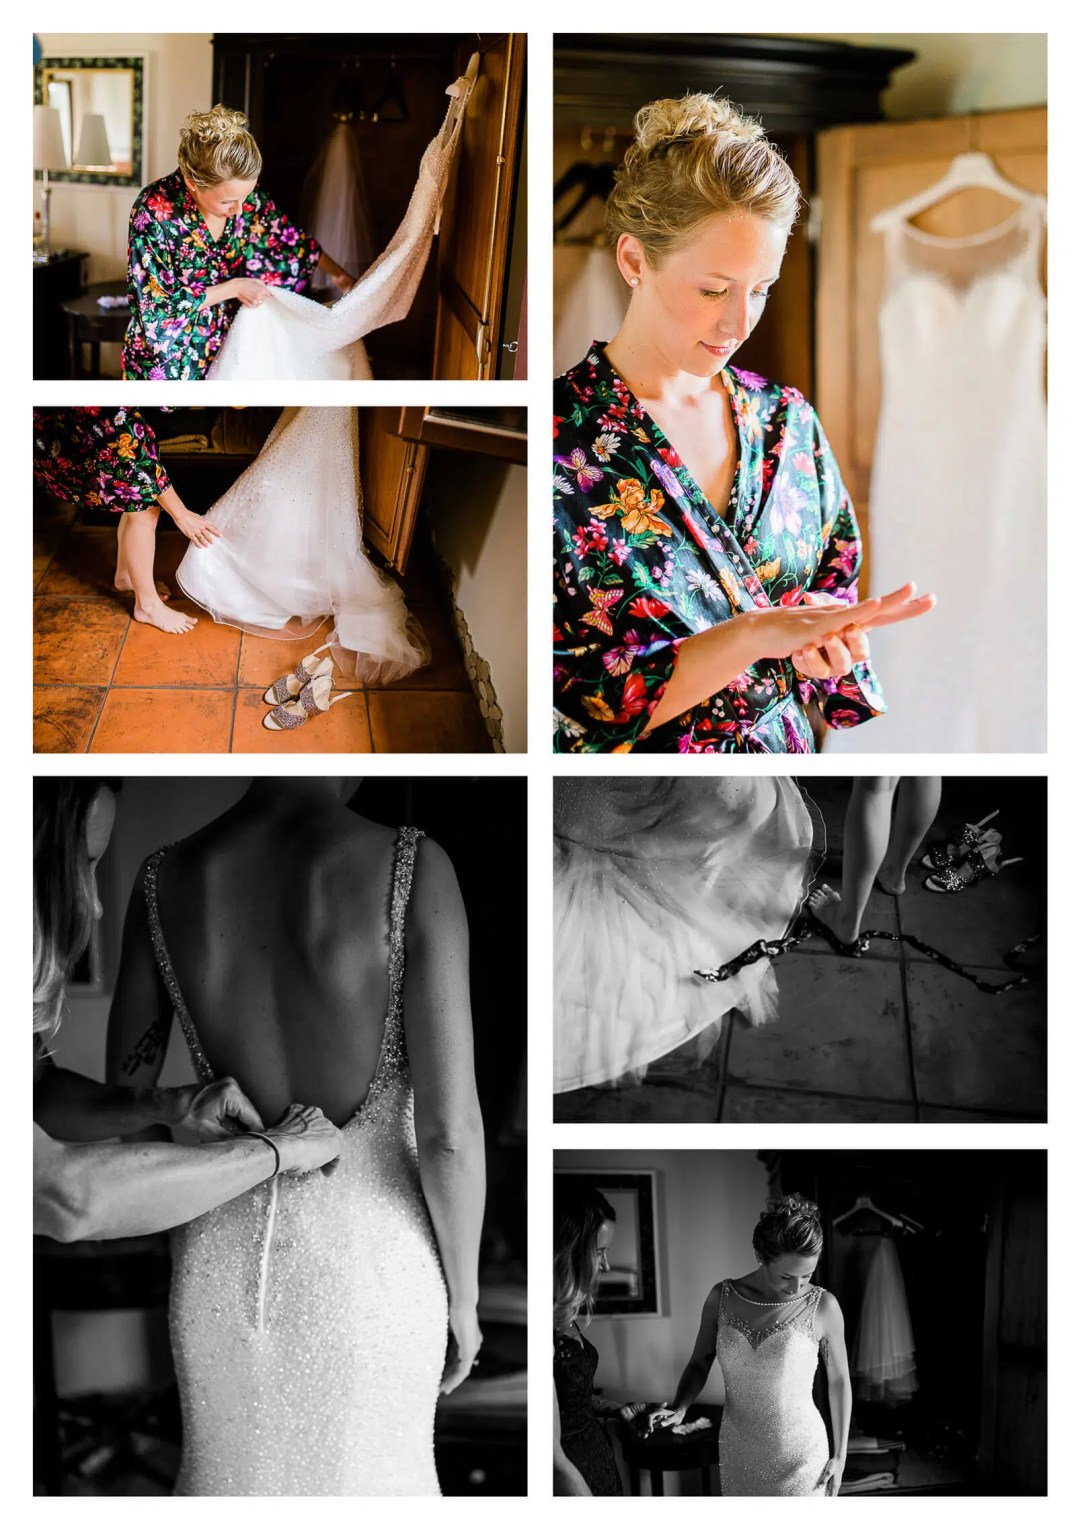 Bride getting ready at Fossa Mala in Italy | Pordenone destination photographer